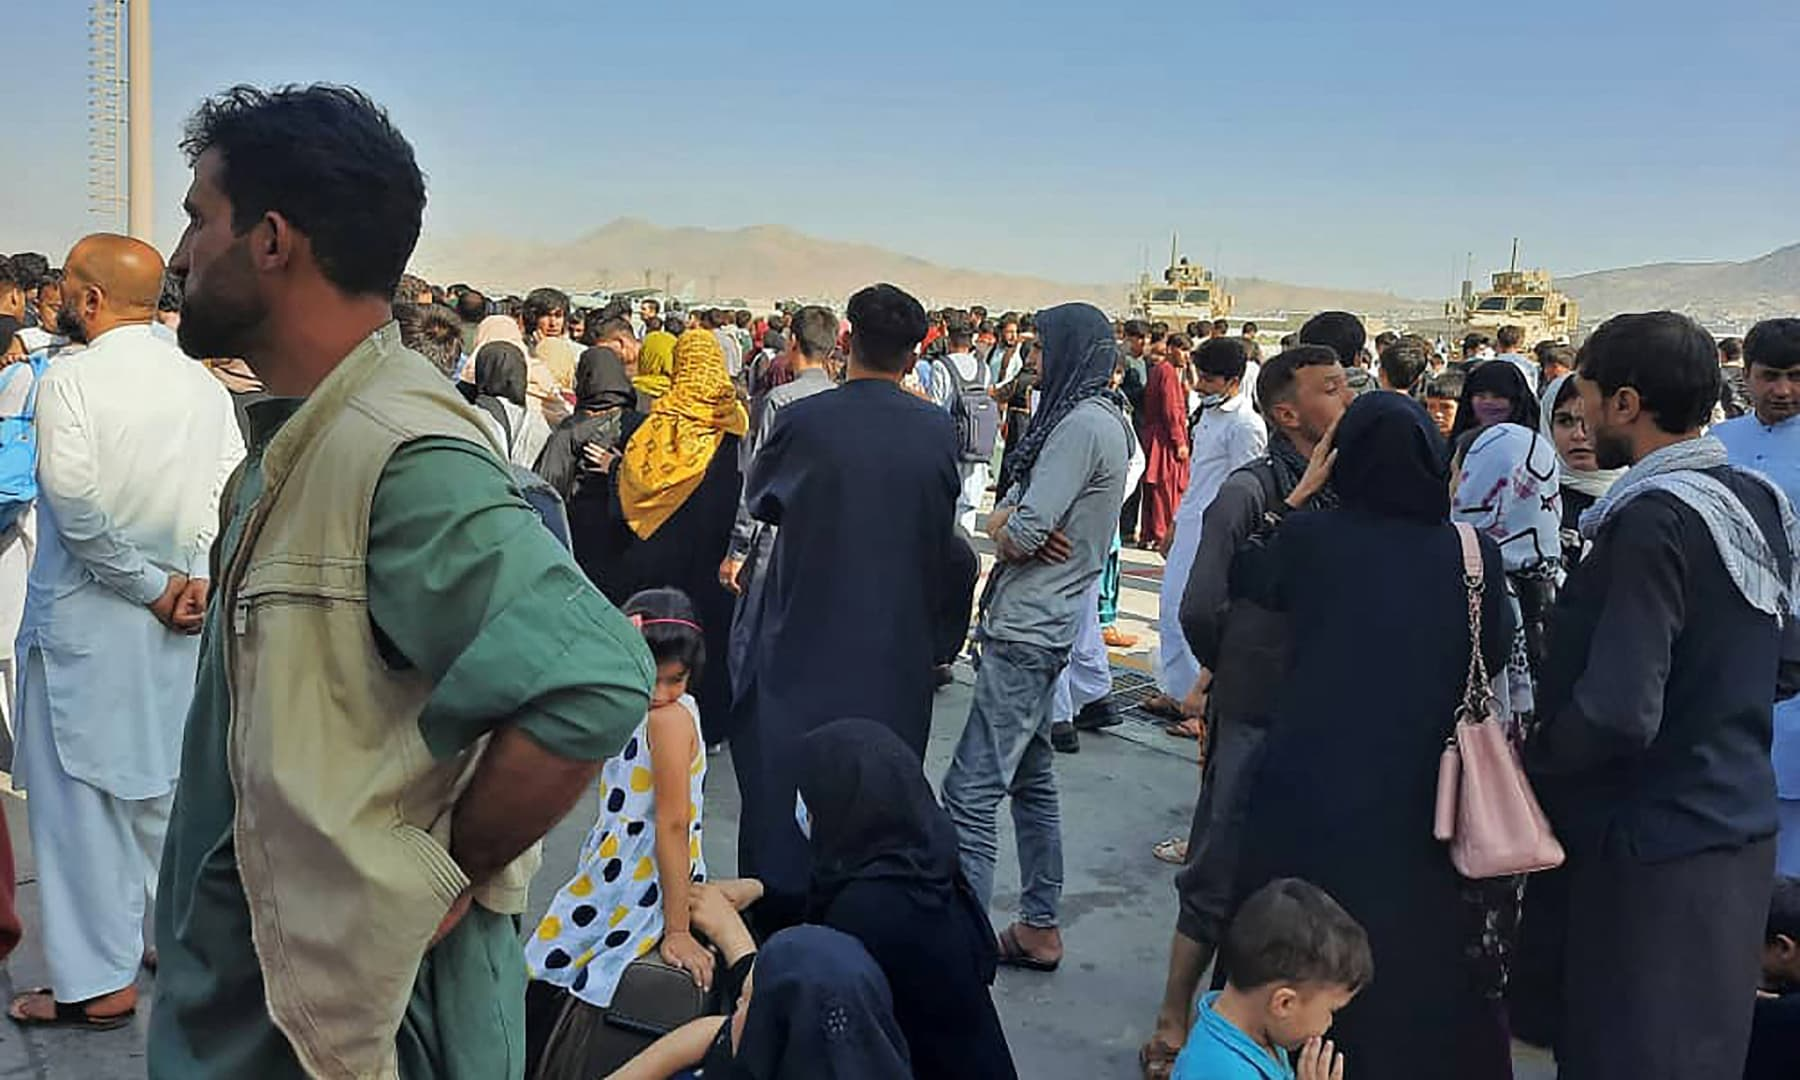 Afghans crowd at the tarmac of the Kabul airport in Kabul, Afghanistan on August 16, 2021, to flee the country. — AFP